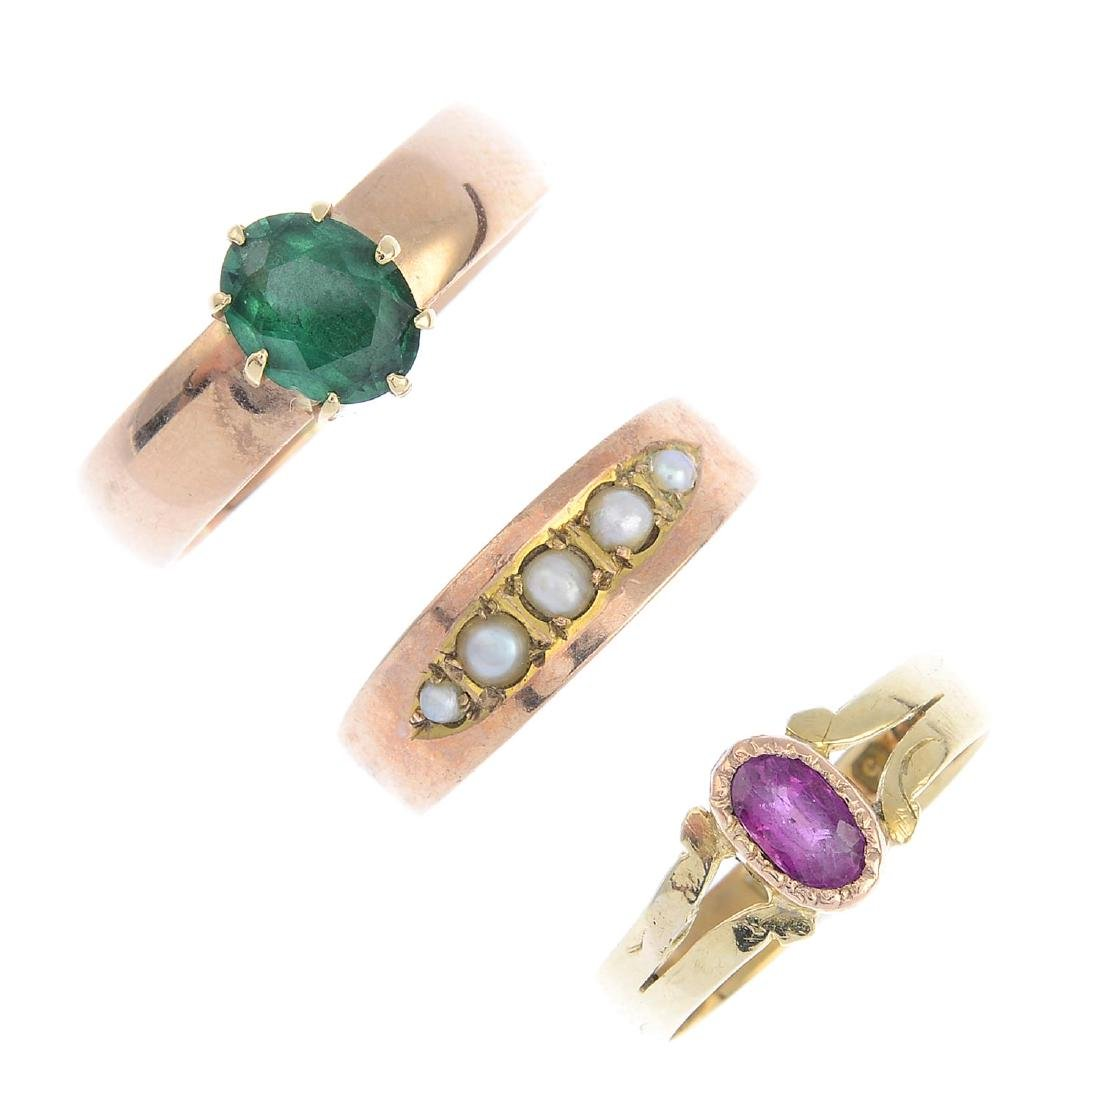 Three Victorian gold gem-set rings. To include a mid